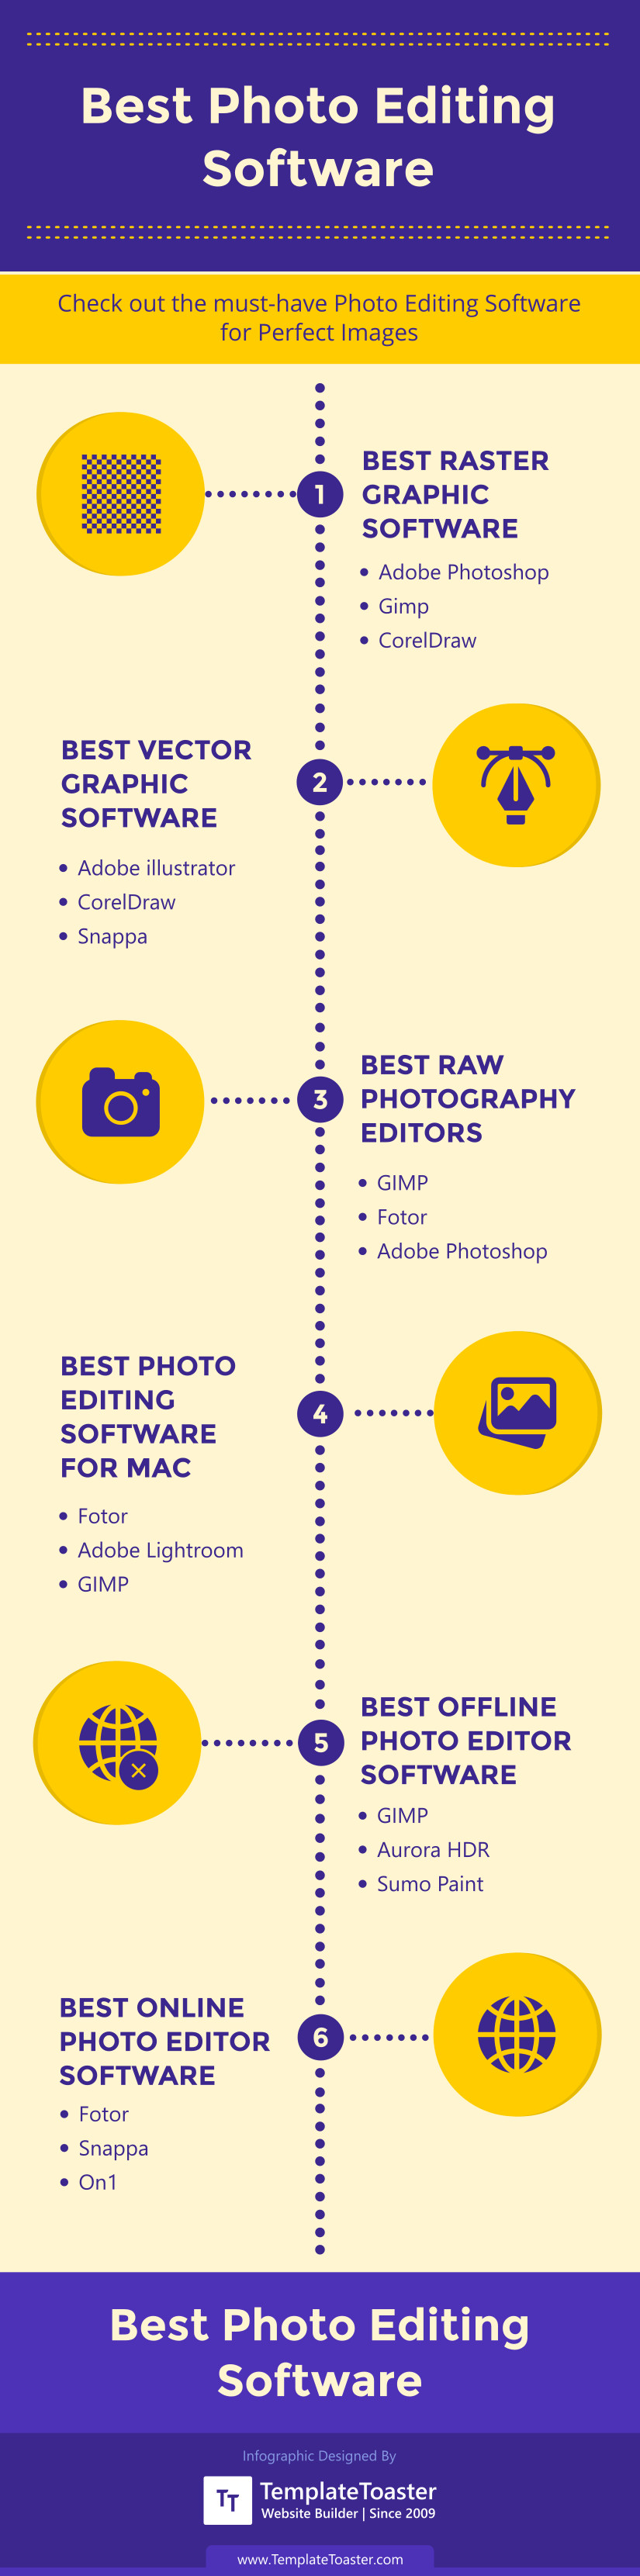 Best Photo Editing Software compared